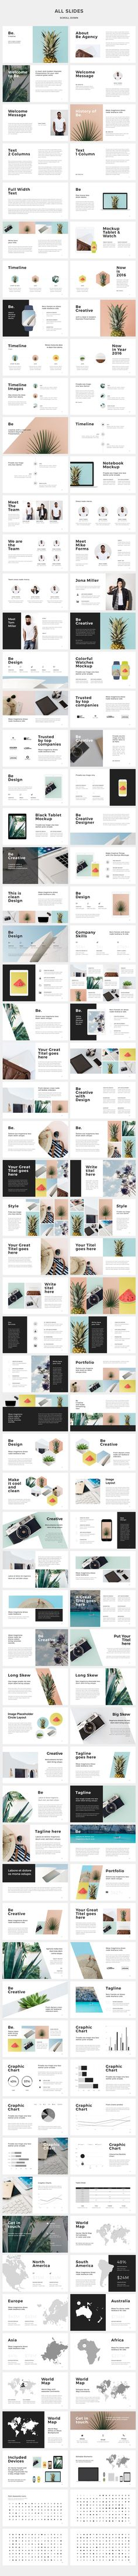 Be Powerpoint Presentation +30Photos by Dake Made on @creativemarket